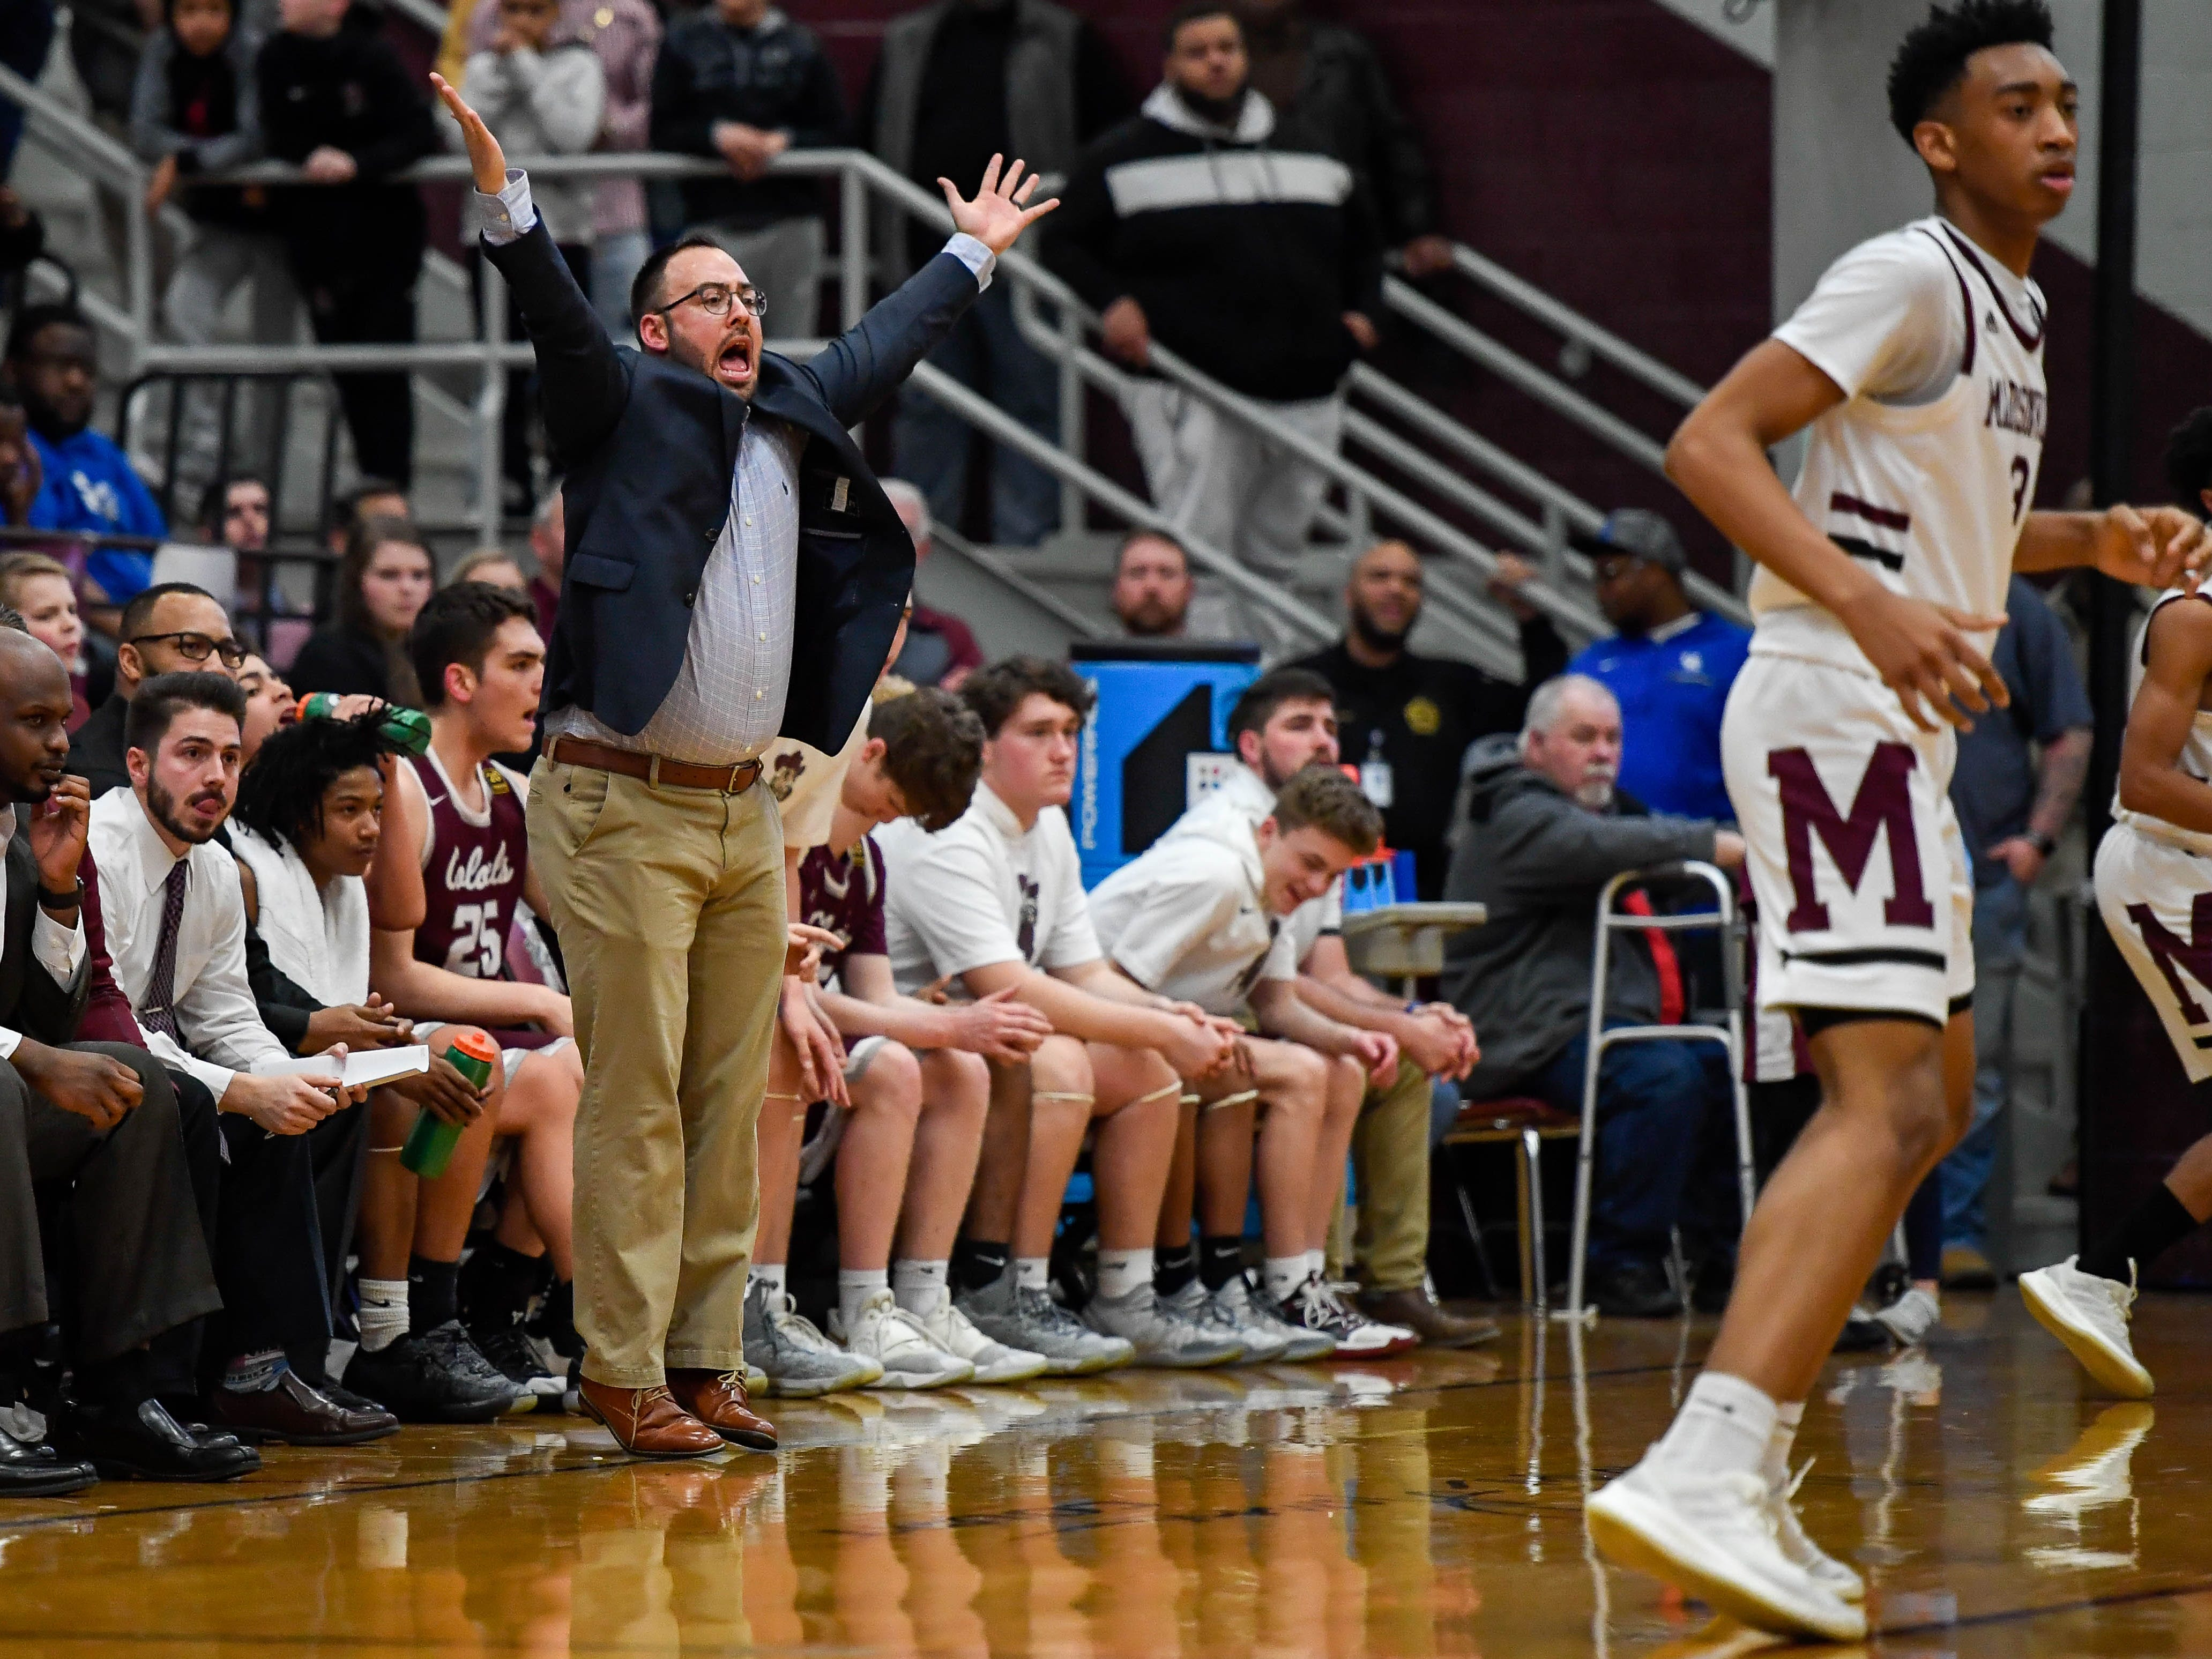 Henderson Head Coach Tyler Smithart reacts to action on the floor as the Henderson County Colonels play the Madisonville Maroons in the Boys 2nd Region basketball semi-finals Friday in Hansen, March 1, 2019.